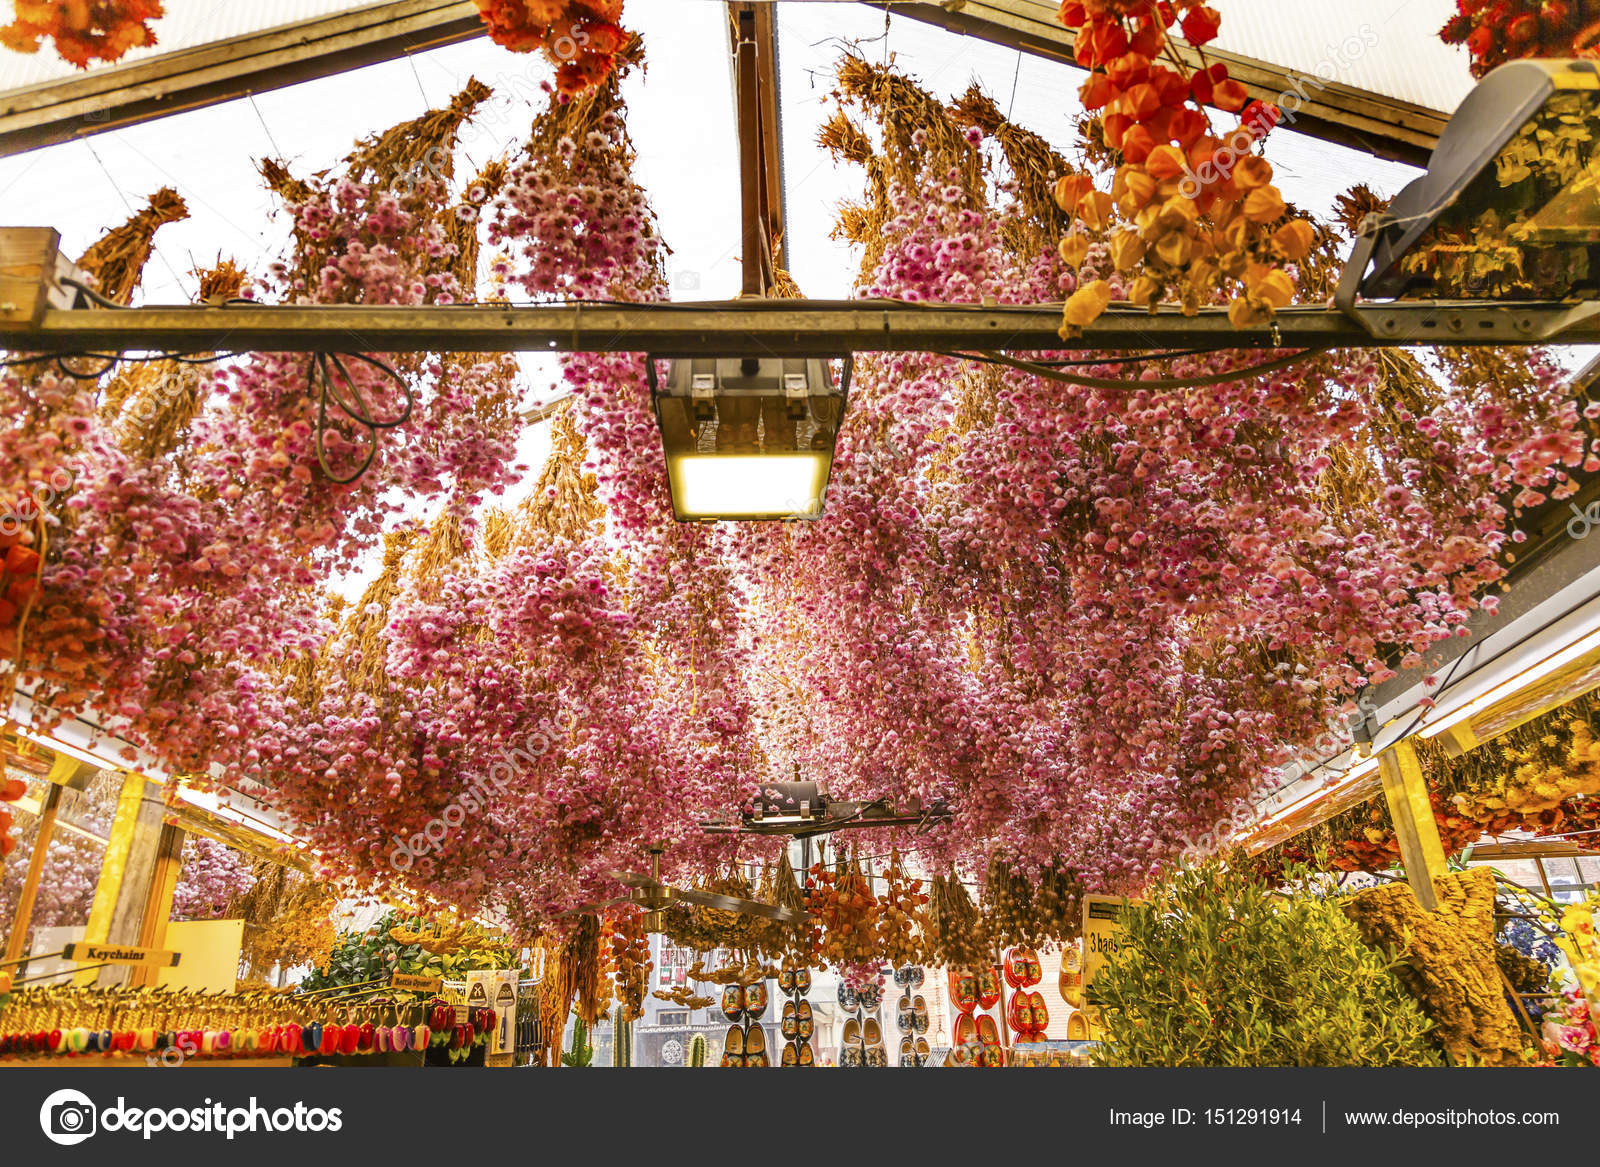 Dried Flowers Outdoor Flower Market Amsterdam Holland Netherlands — Stock Photo